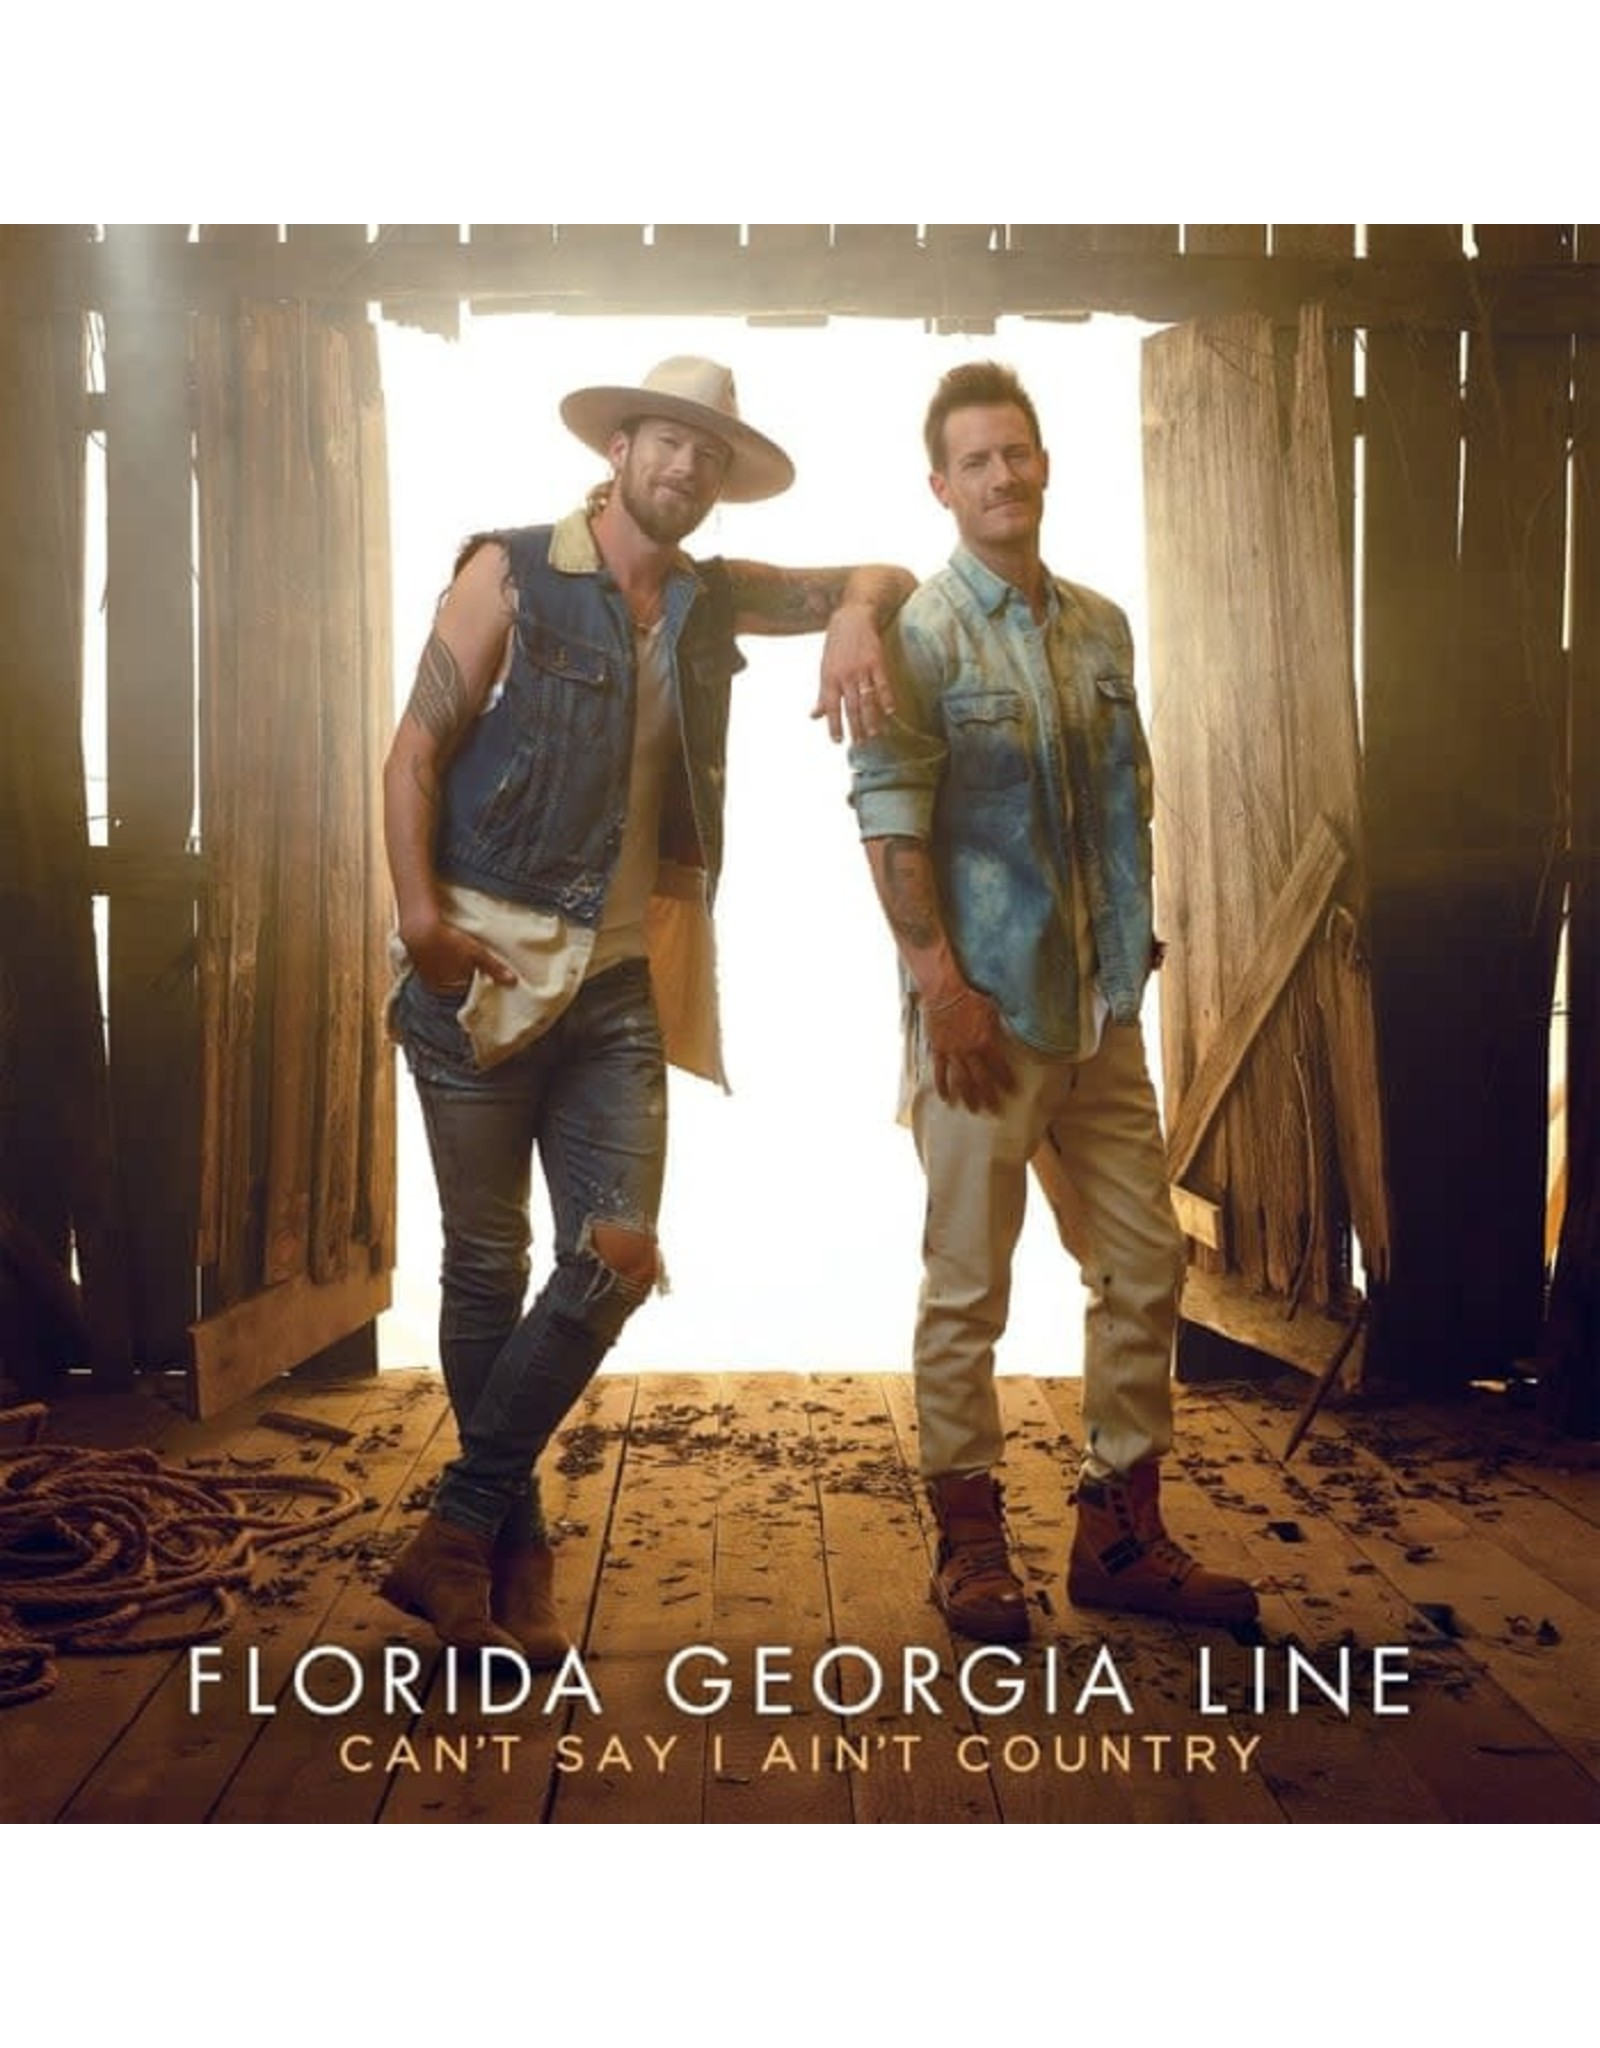 Florida Georgia Line - Can't Say I Ain't Country LP